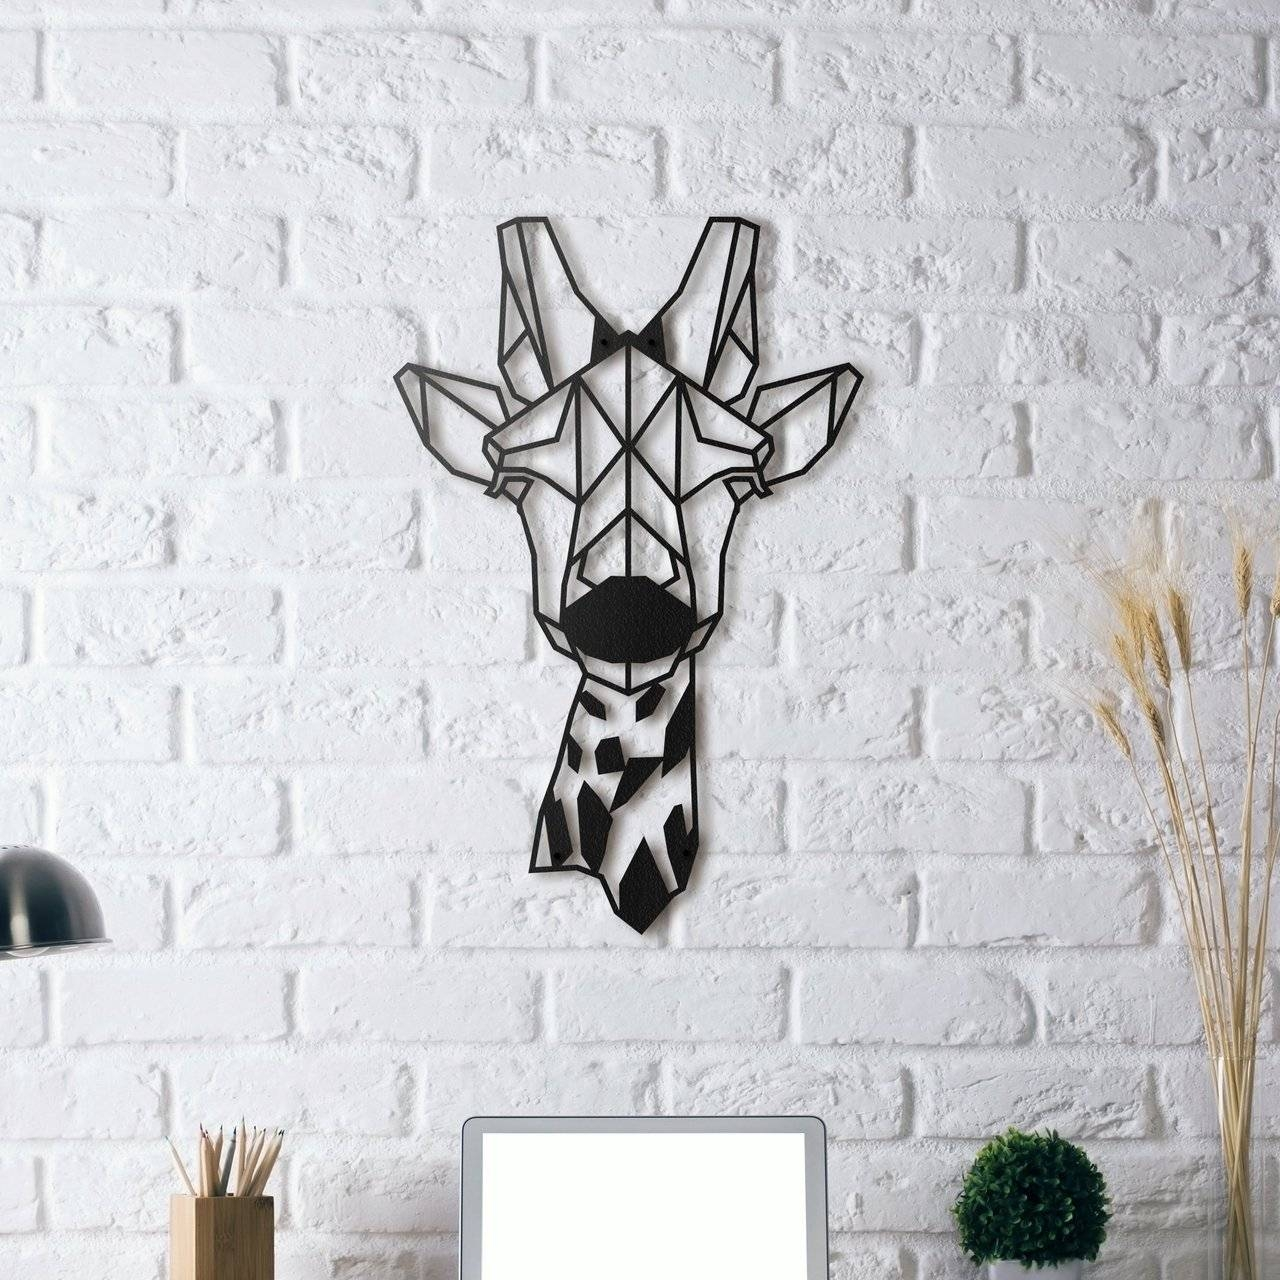 Giraffe » Petagadget Within 2017 Giraffe Metal Wall Art (View 10 of 20)